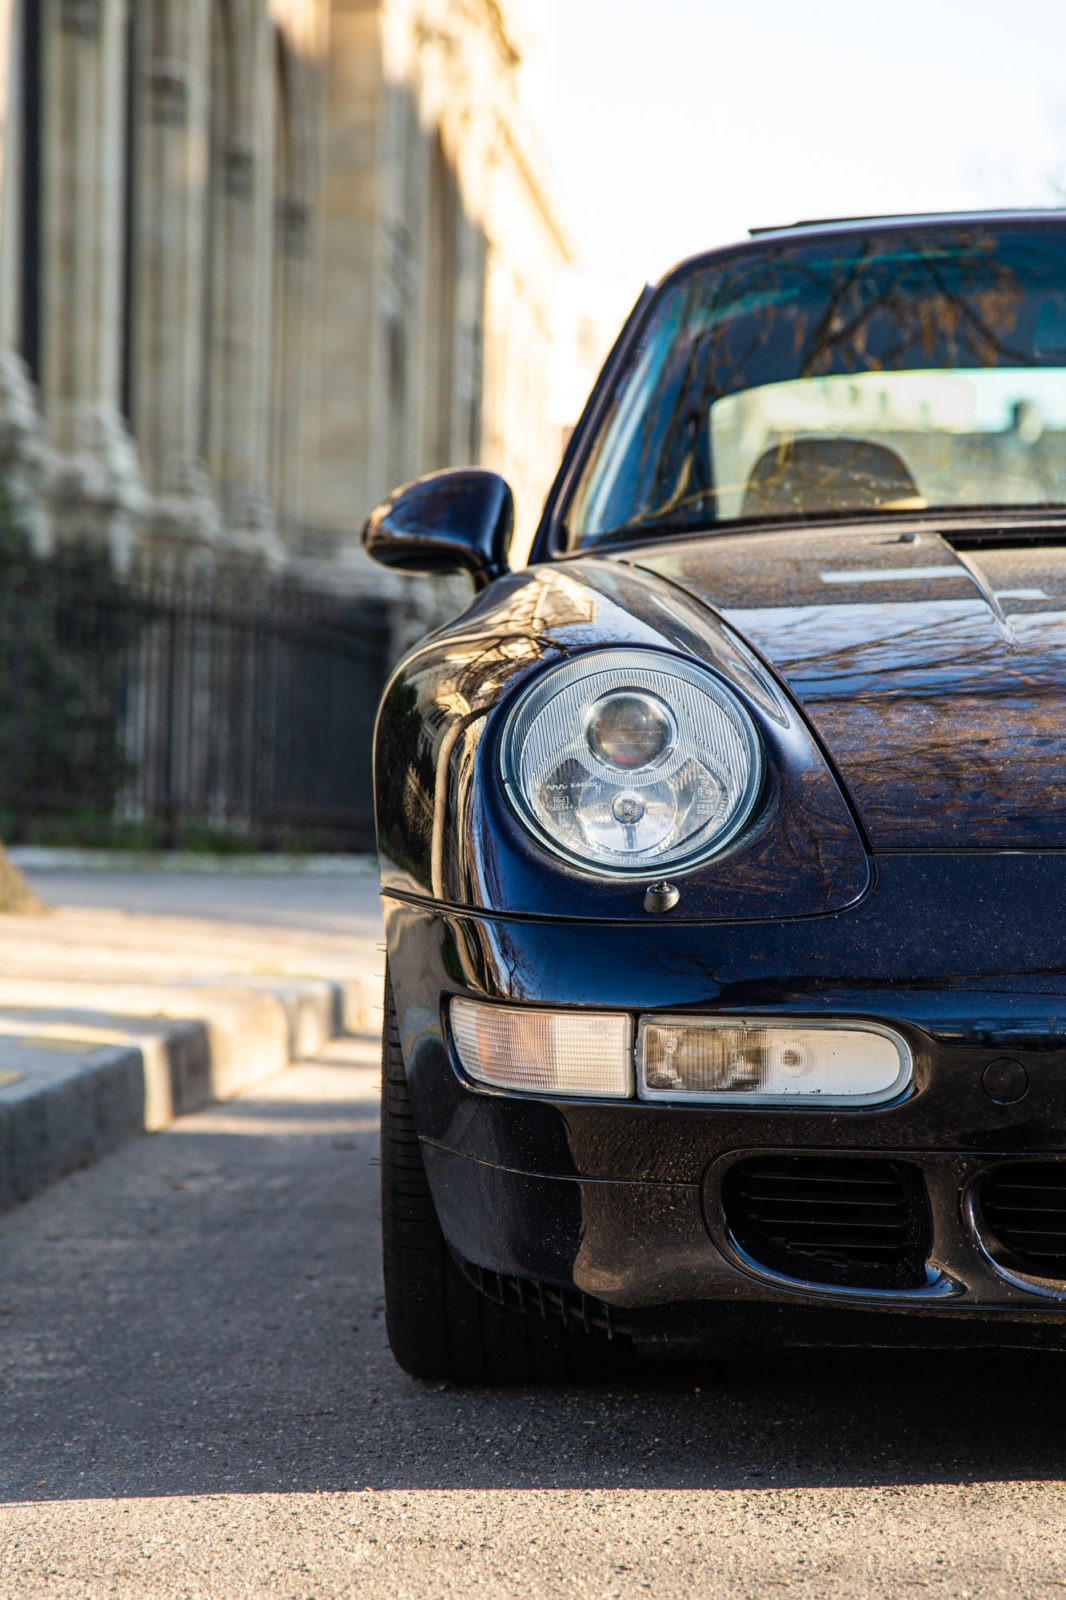 Porsche 911 Type 993 Turbo - Optique